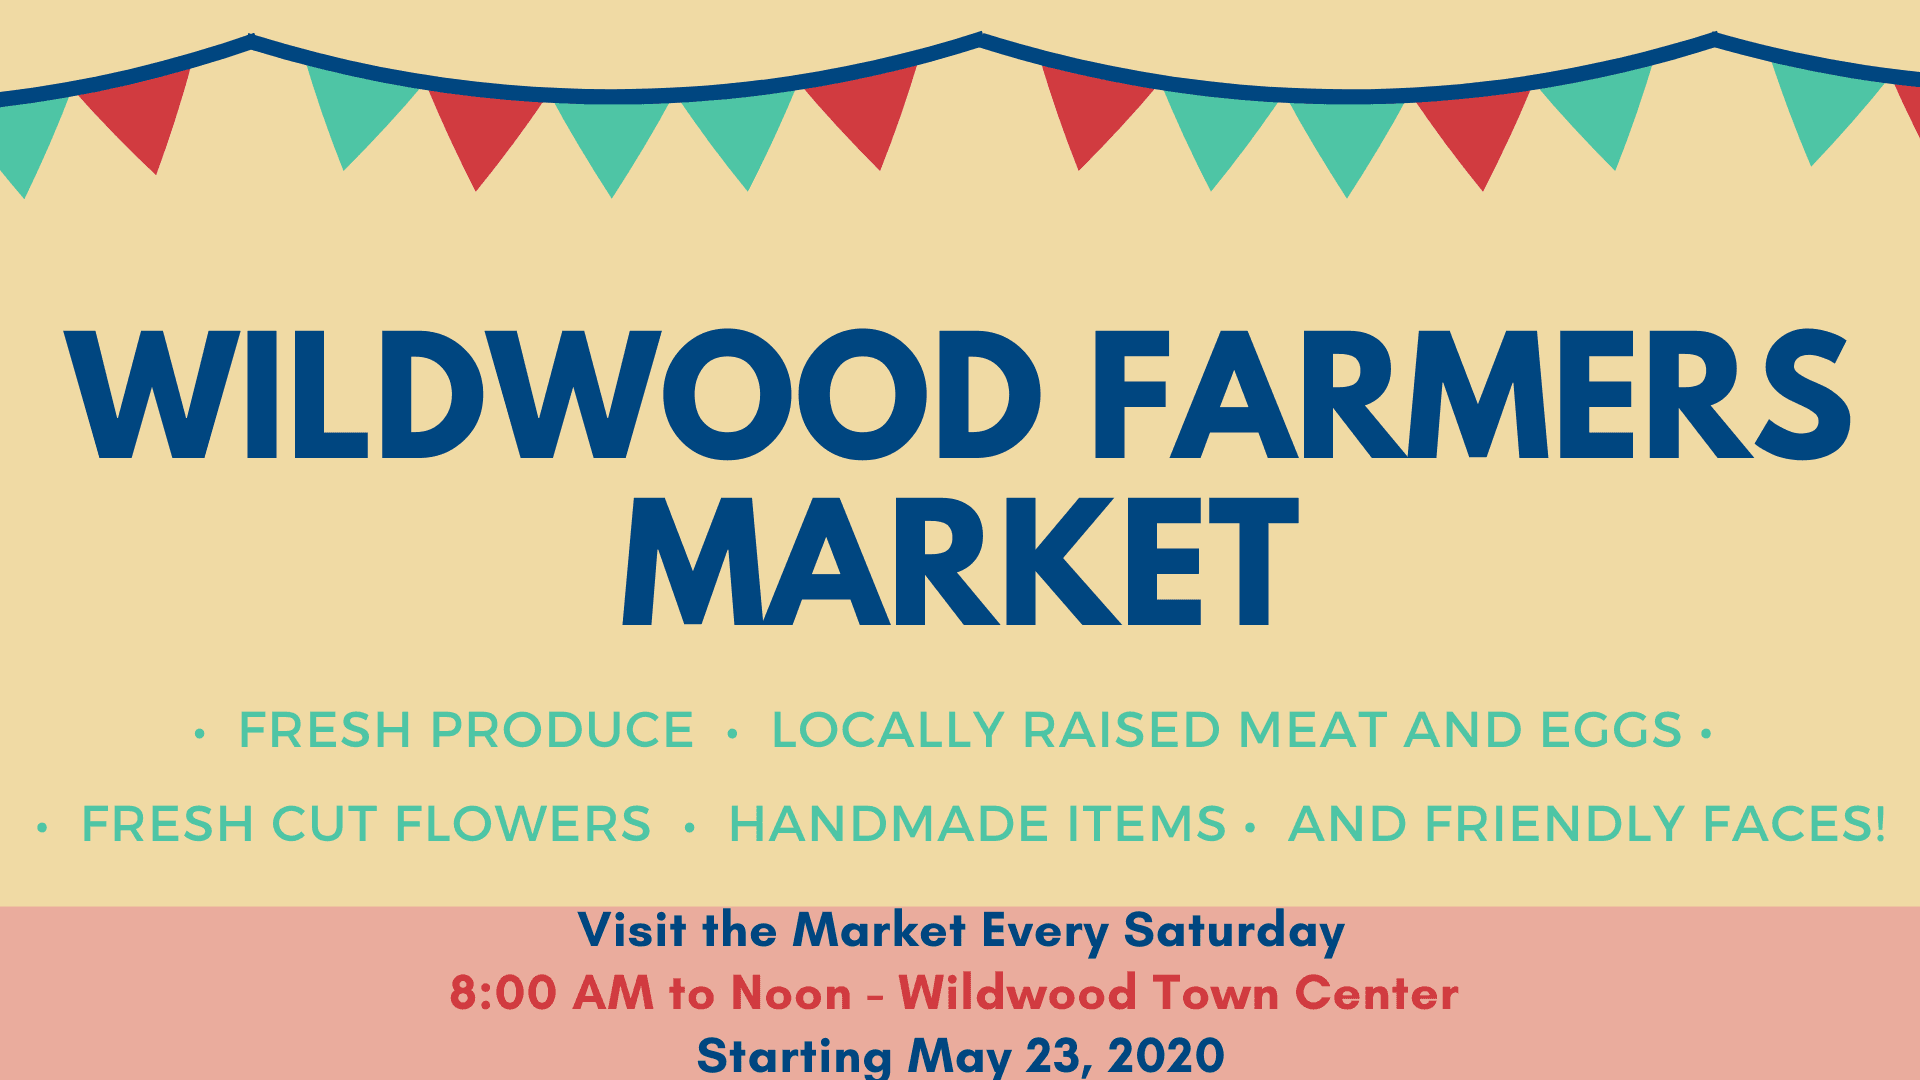 2020 Wildwood Farmers Market EVENT Page Cover